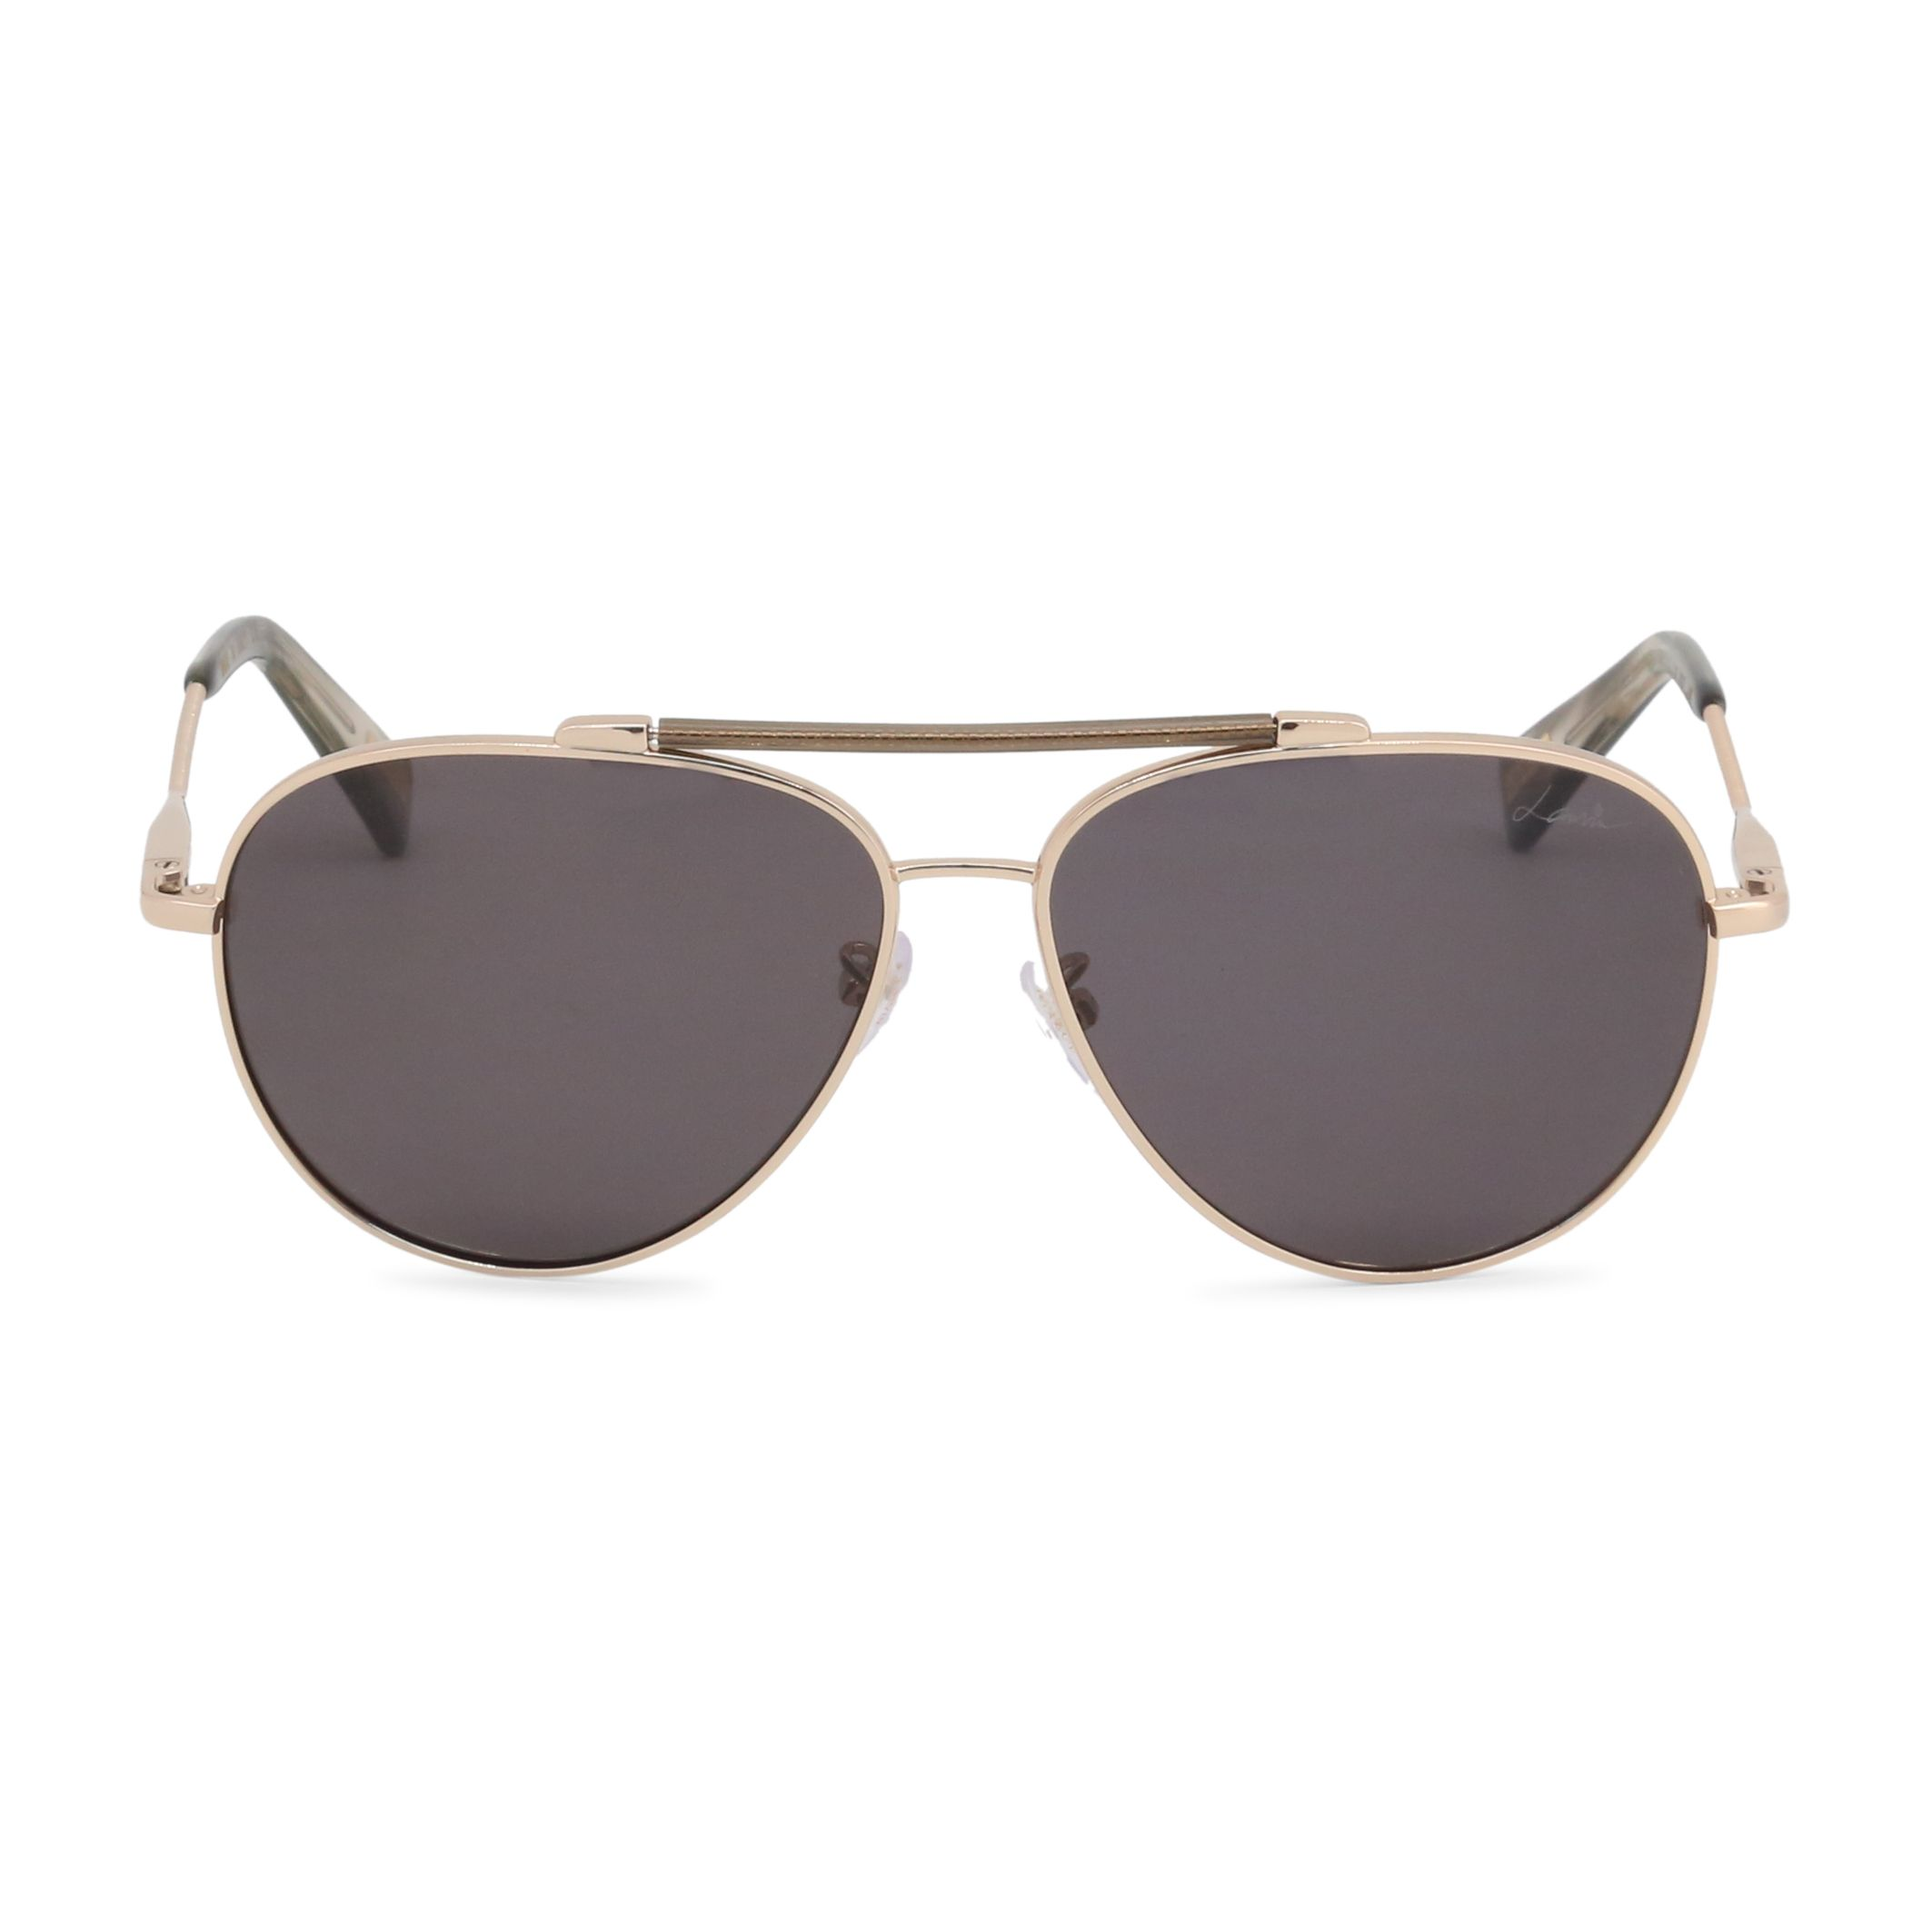 Lanvin Mens Sunglasses